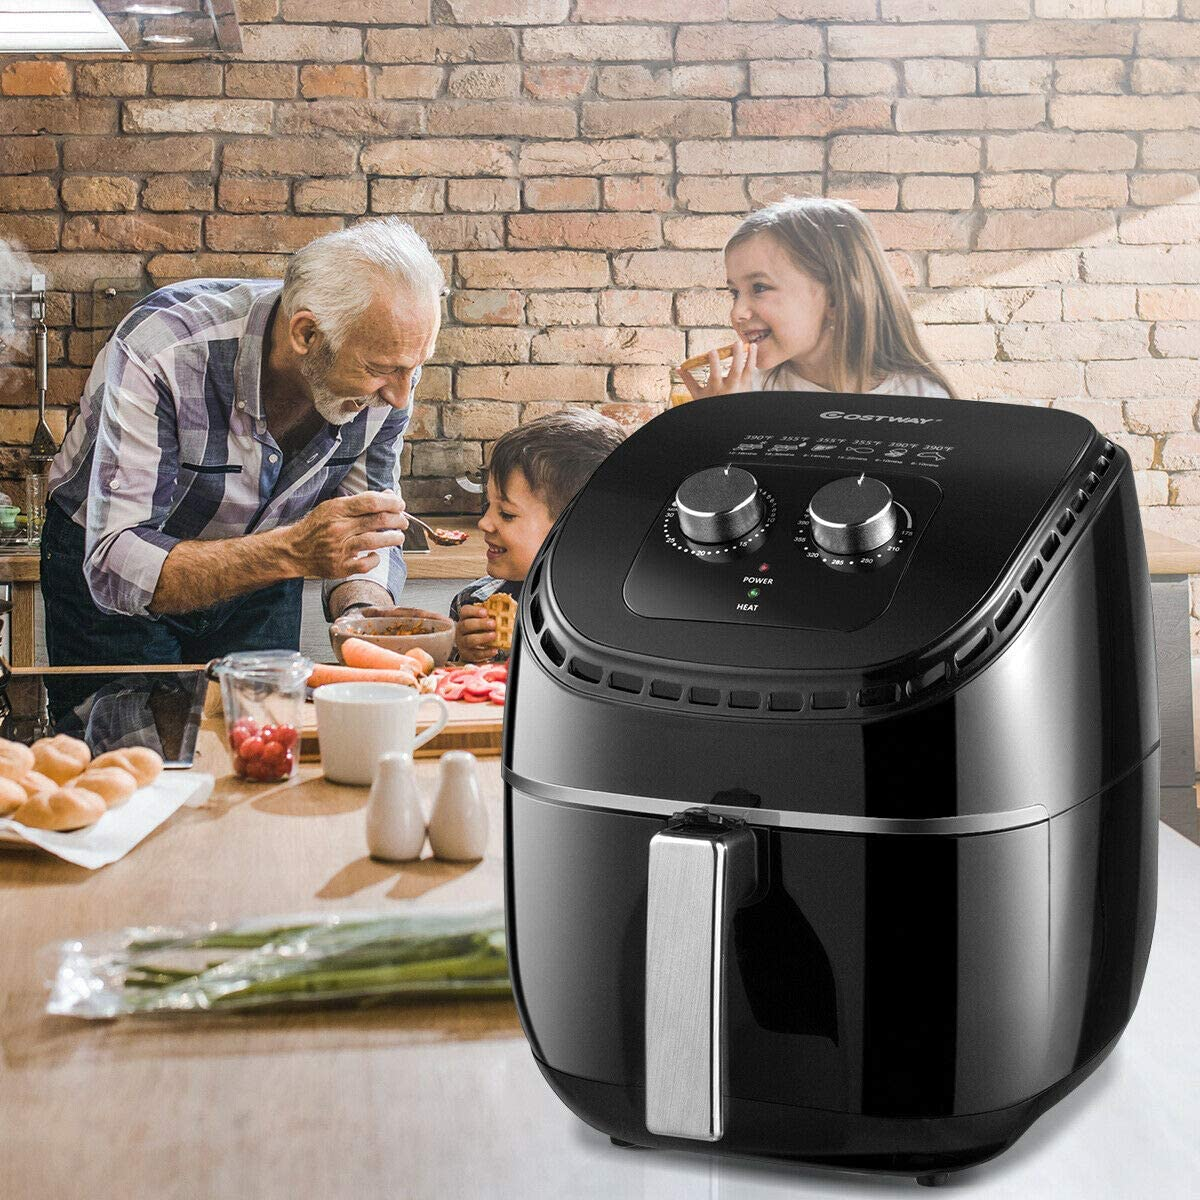 COSTWAY Air Fryer 3.5Qt 1300W Electric Hot Oil-Less Oven Cooker, UL Cretified, Dishwasher Safe, with Smart Time Temperature Control, Non Stick Fry Basket, Auto Shut Off Black